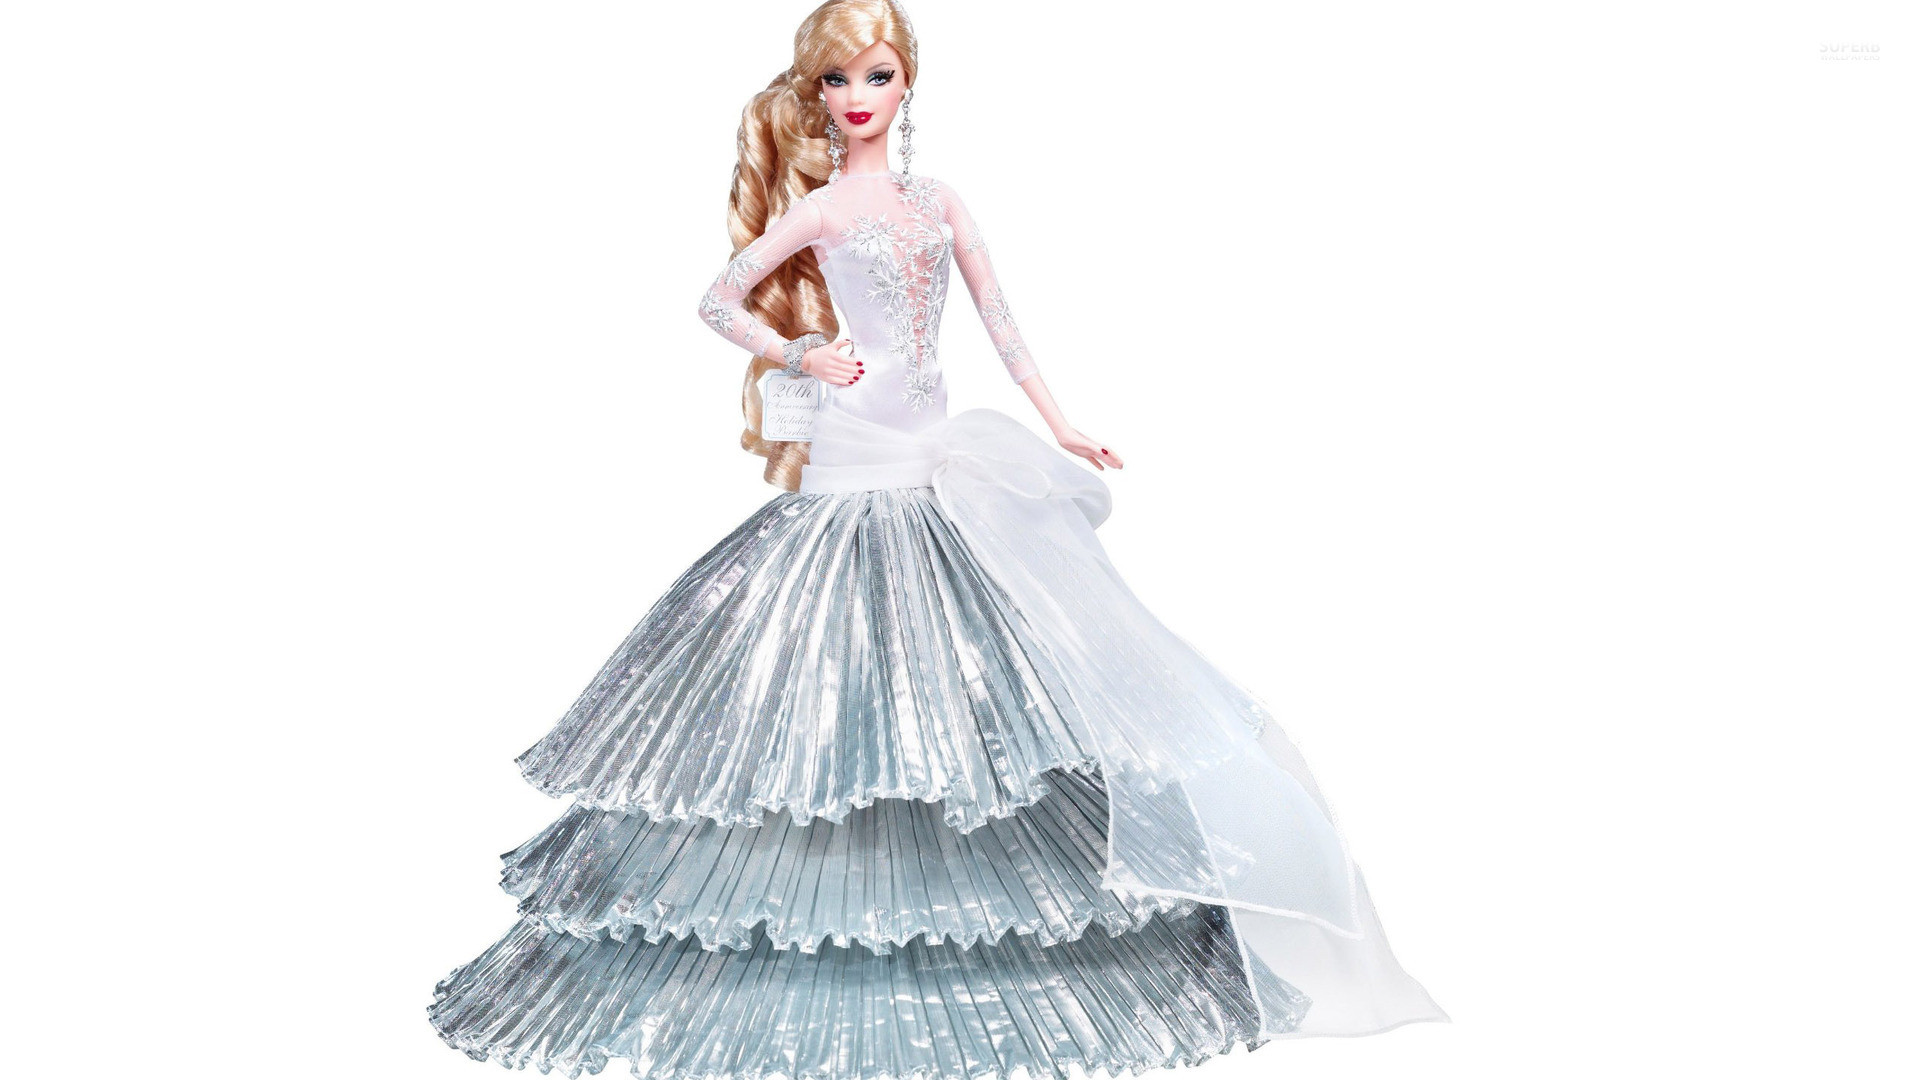 Amazing Wallpaper Mobile Barbie Doll - 859847-barbie-doll-wallpaper-1920x1080-hd-for-mobile  Photograph_85948.jpg